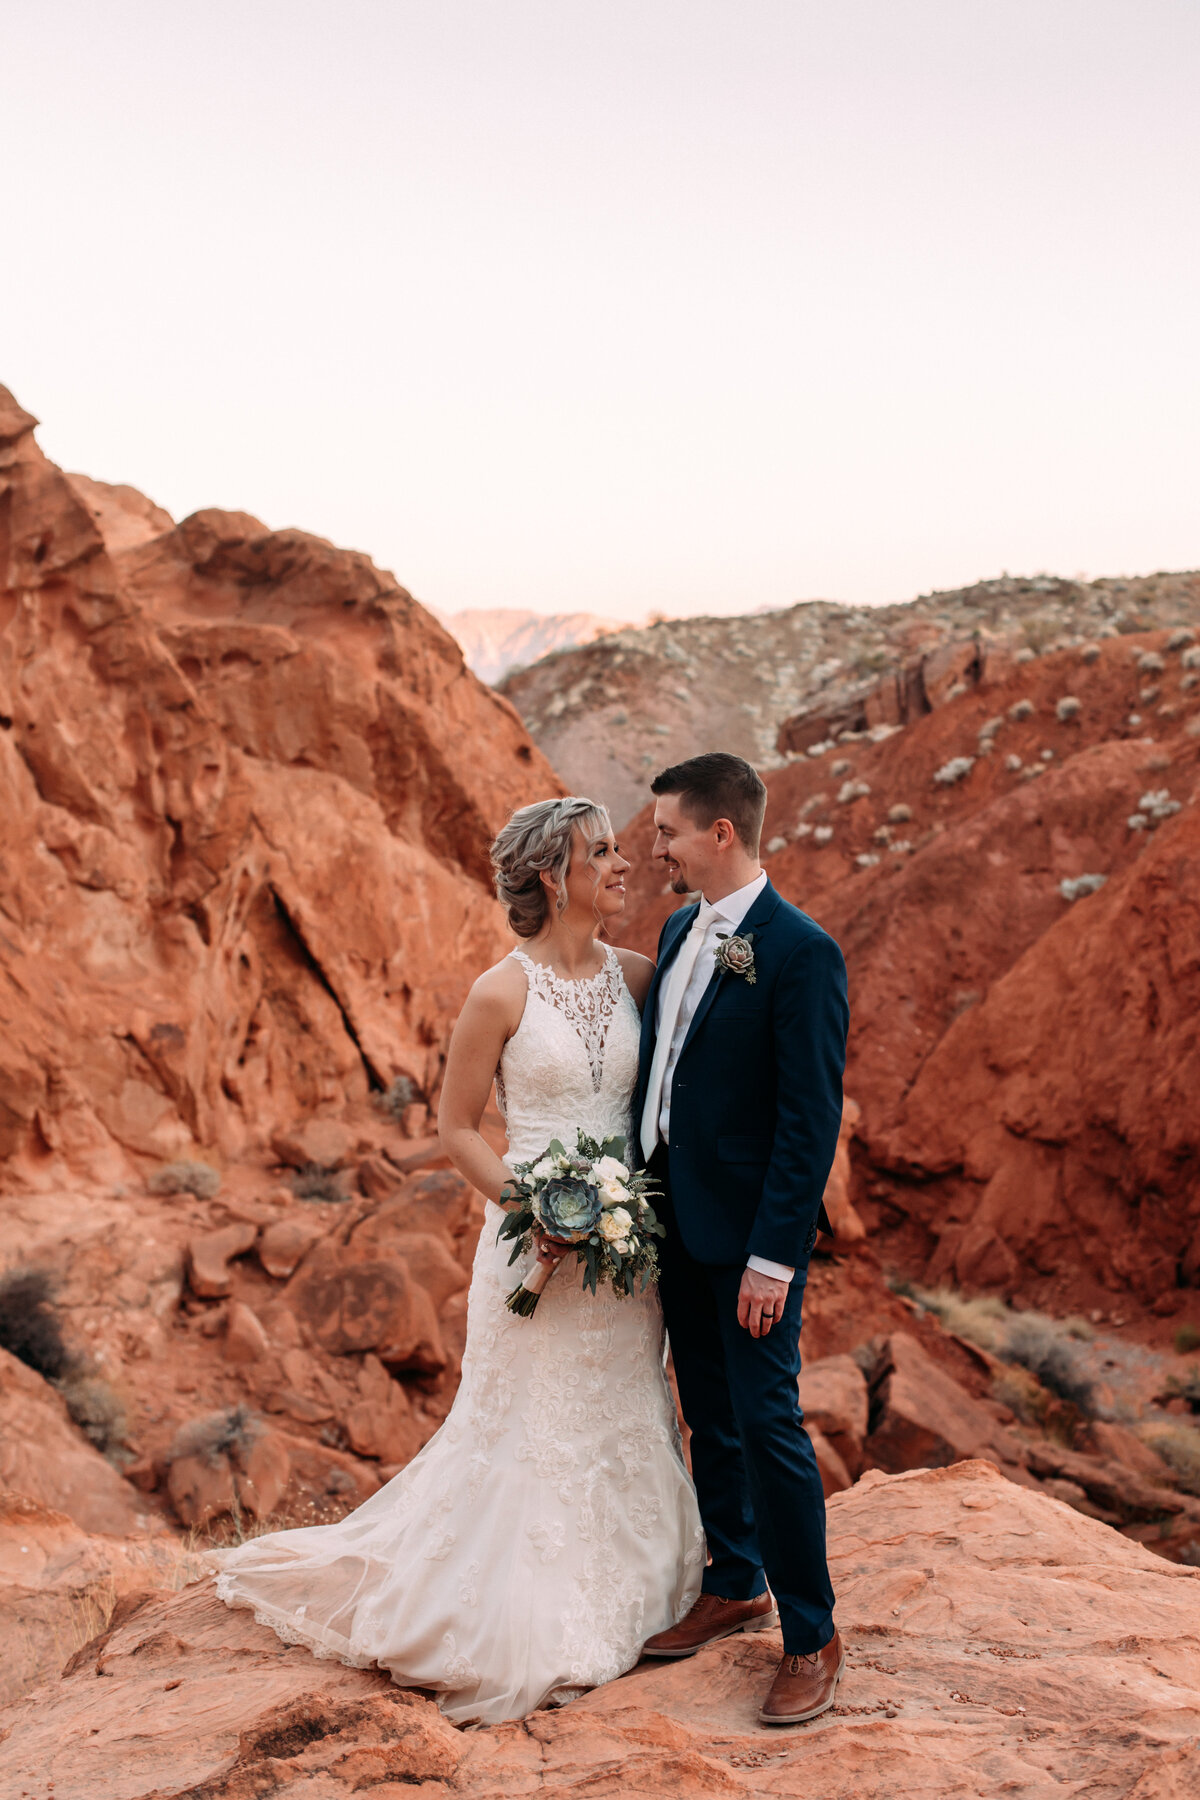 Heather+Ivan|AshlynSavannahPhoto|ValleyofFireElopement-138